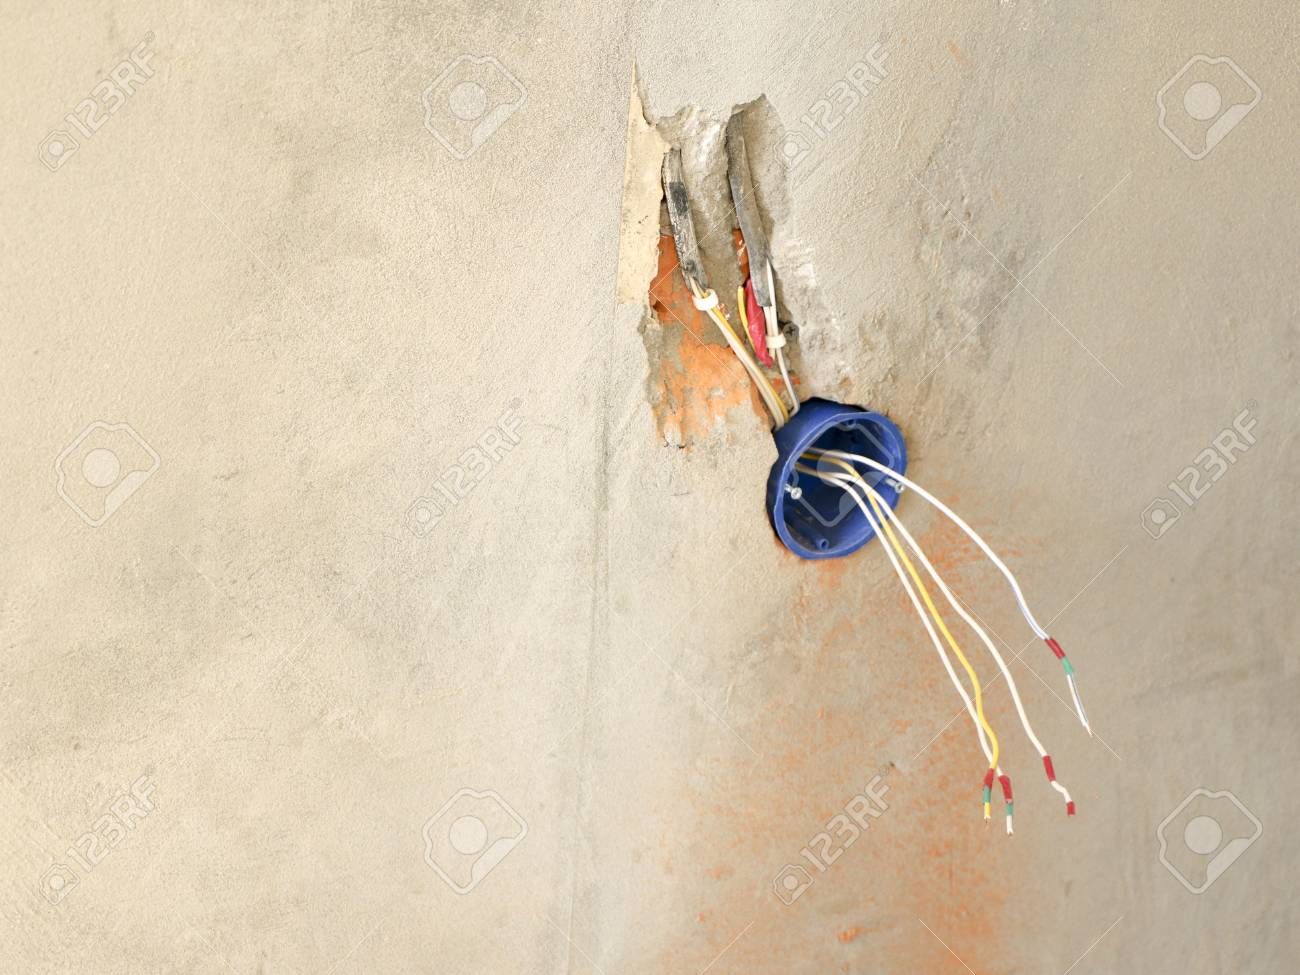 Wall Socket Installation Work On Installing Electrical Outlets Proper Wiring Stock Photo Electrician Prepares Fitting